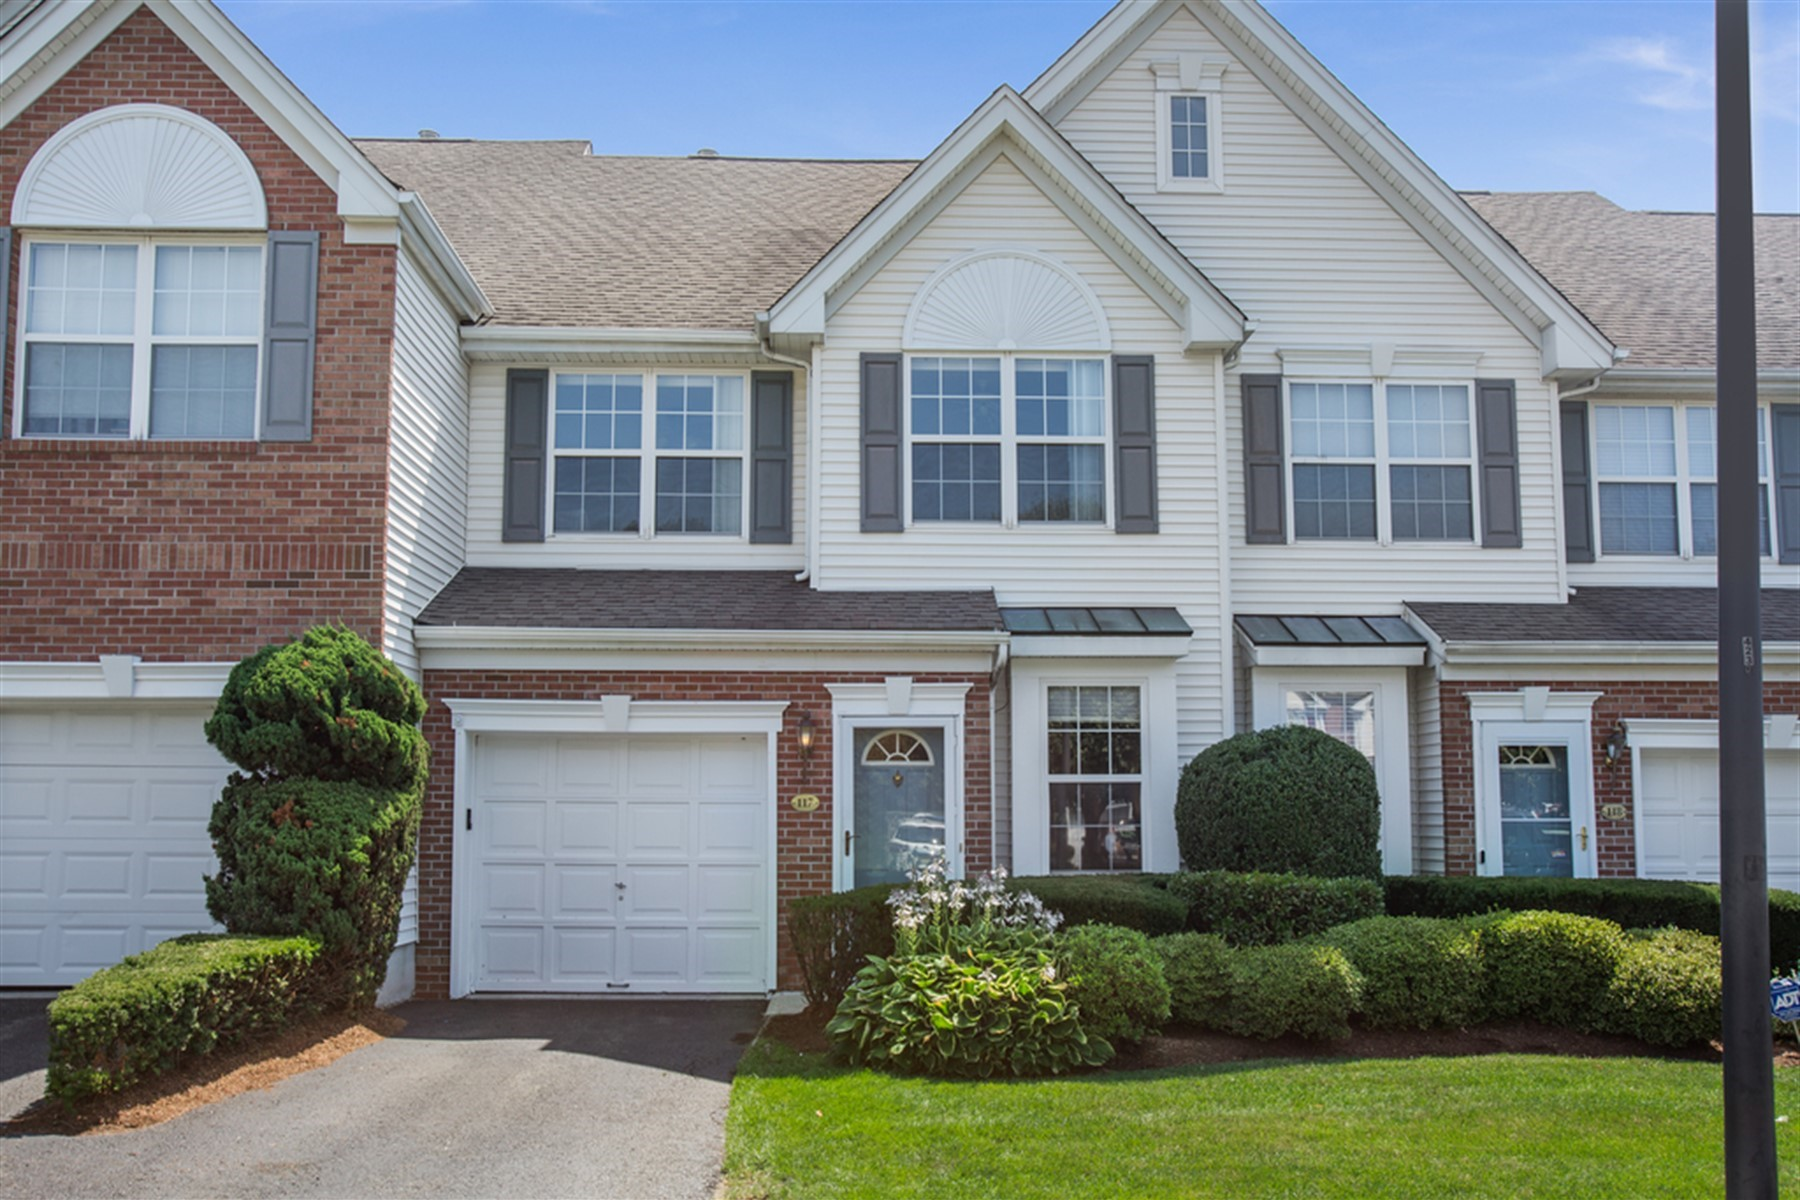 townhouses for Sale at Buckingham Model Townhome 117 Barclay Drive Nutley, New Jersey 07110 United States